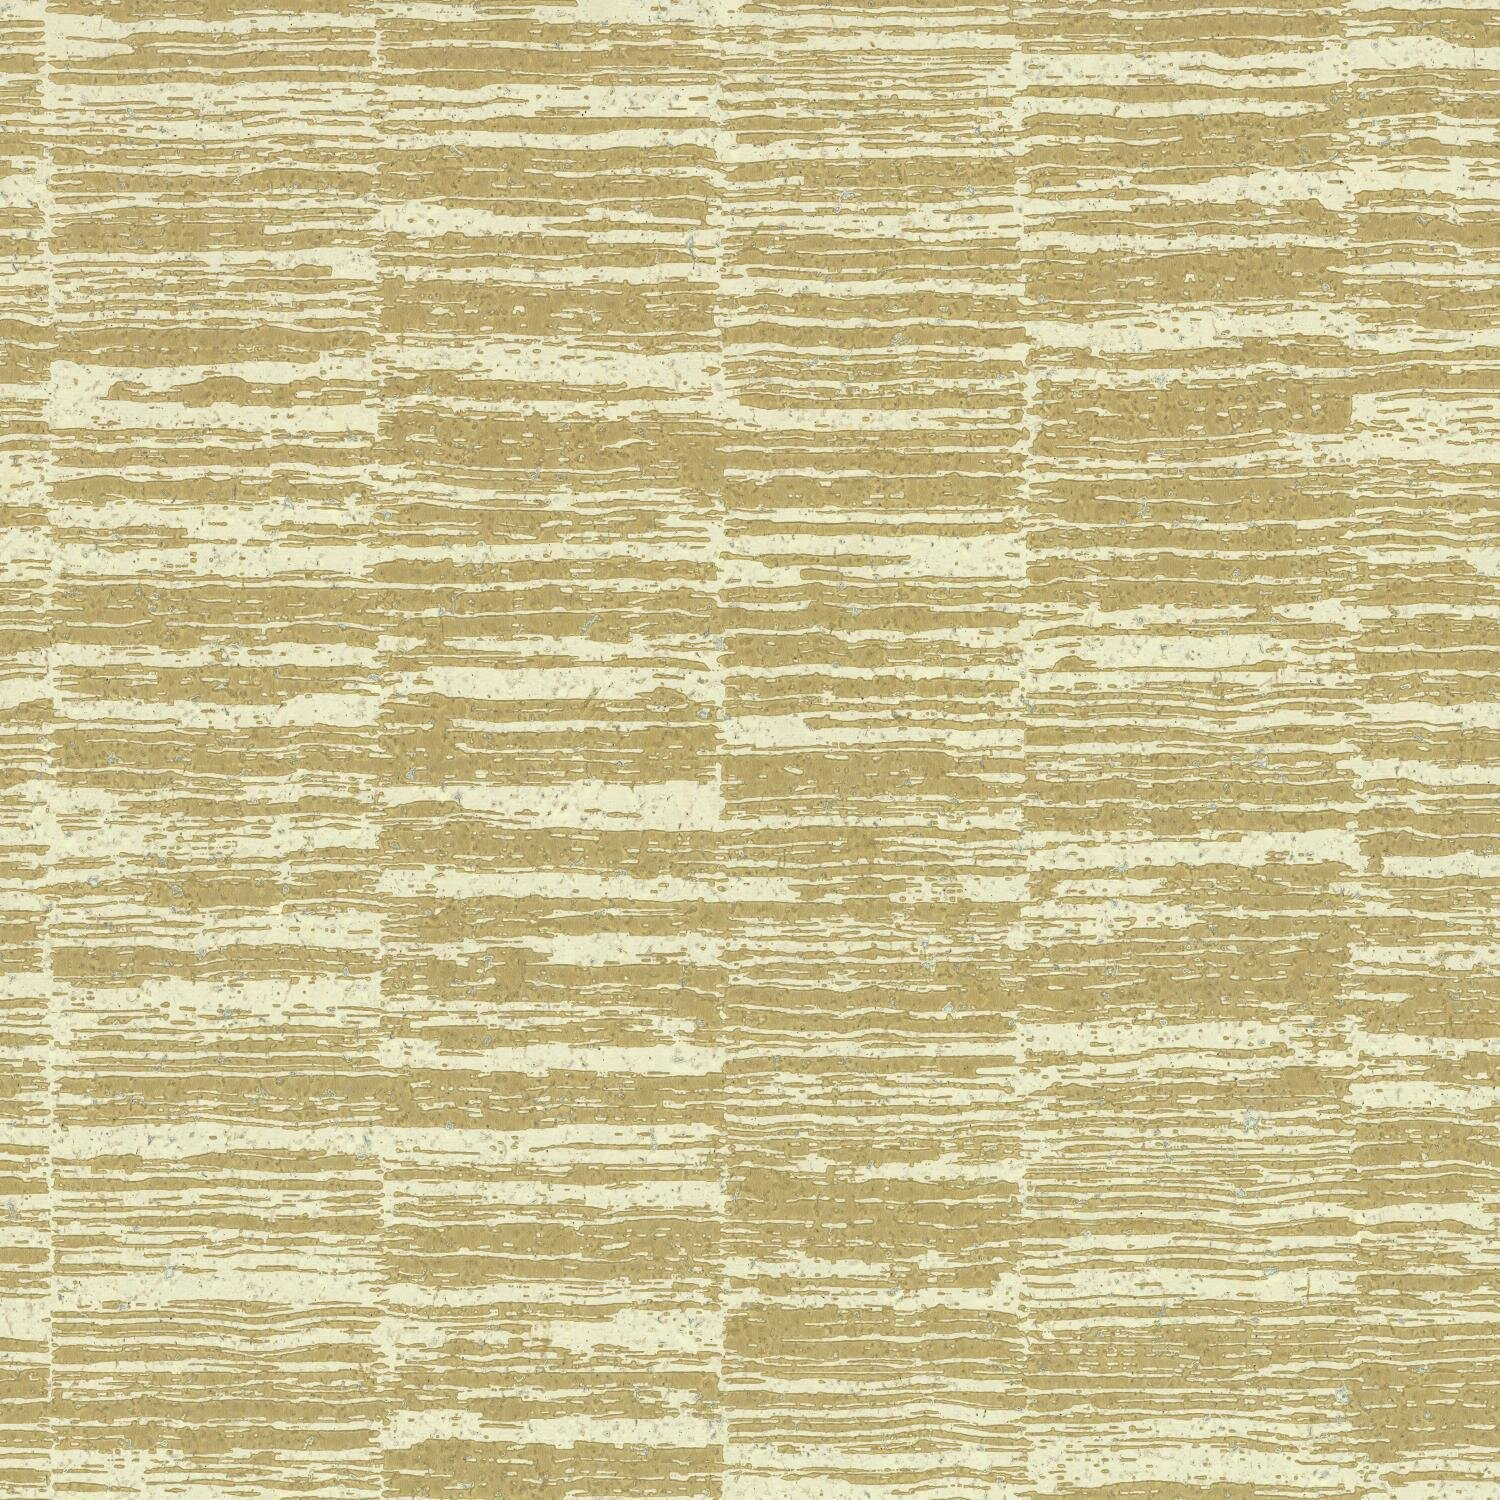 York Wallcoverings Ronald Redding Bioko 27\' L x 27\